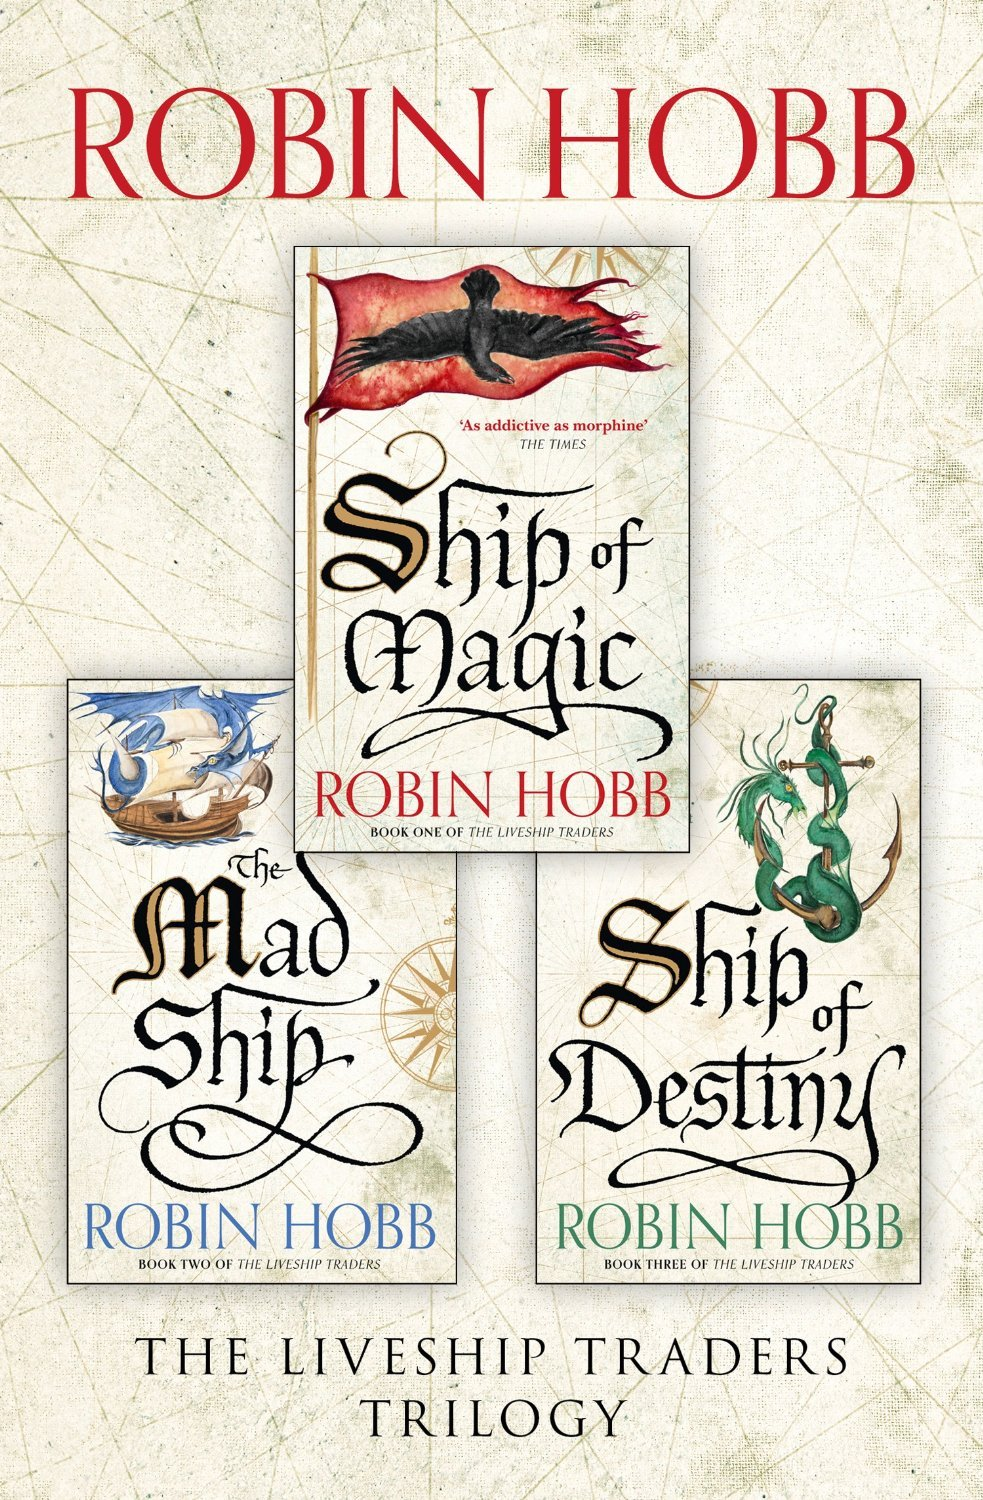 The Complete Liveship Traders Trilogy Omnibus by Robin Hobb